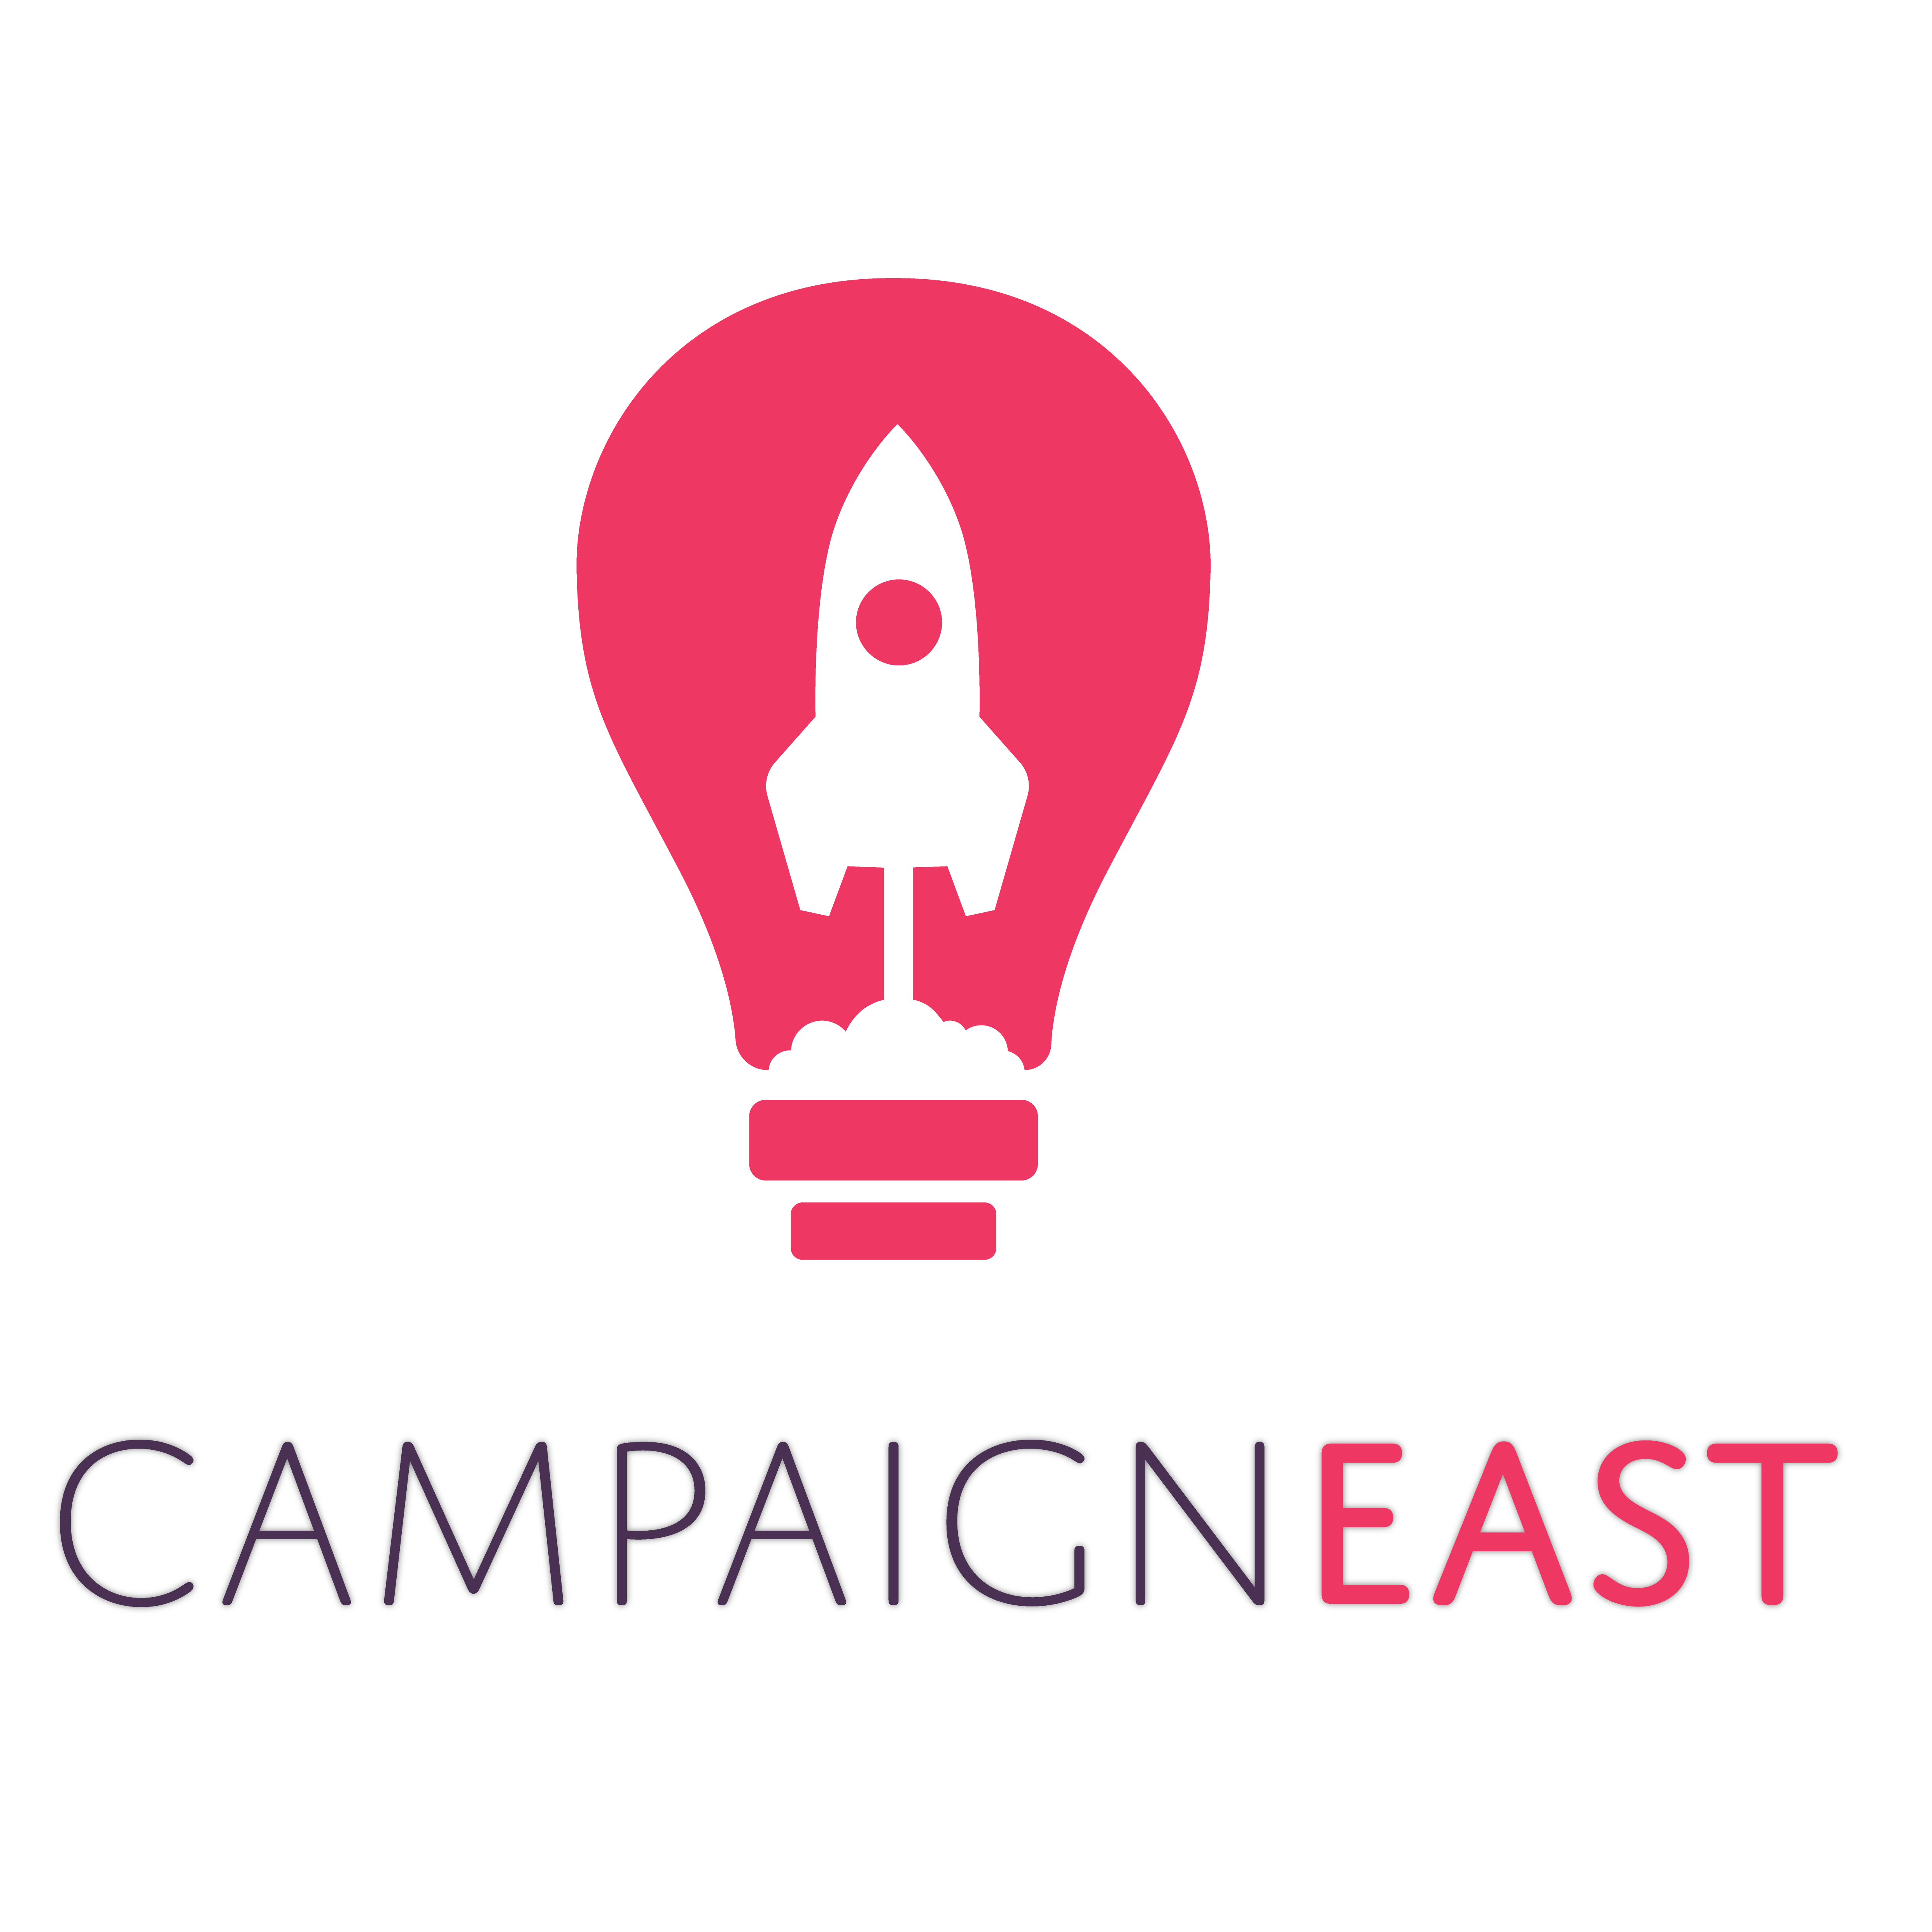 Campaign East